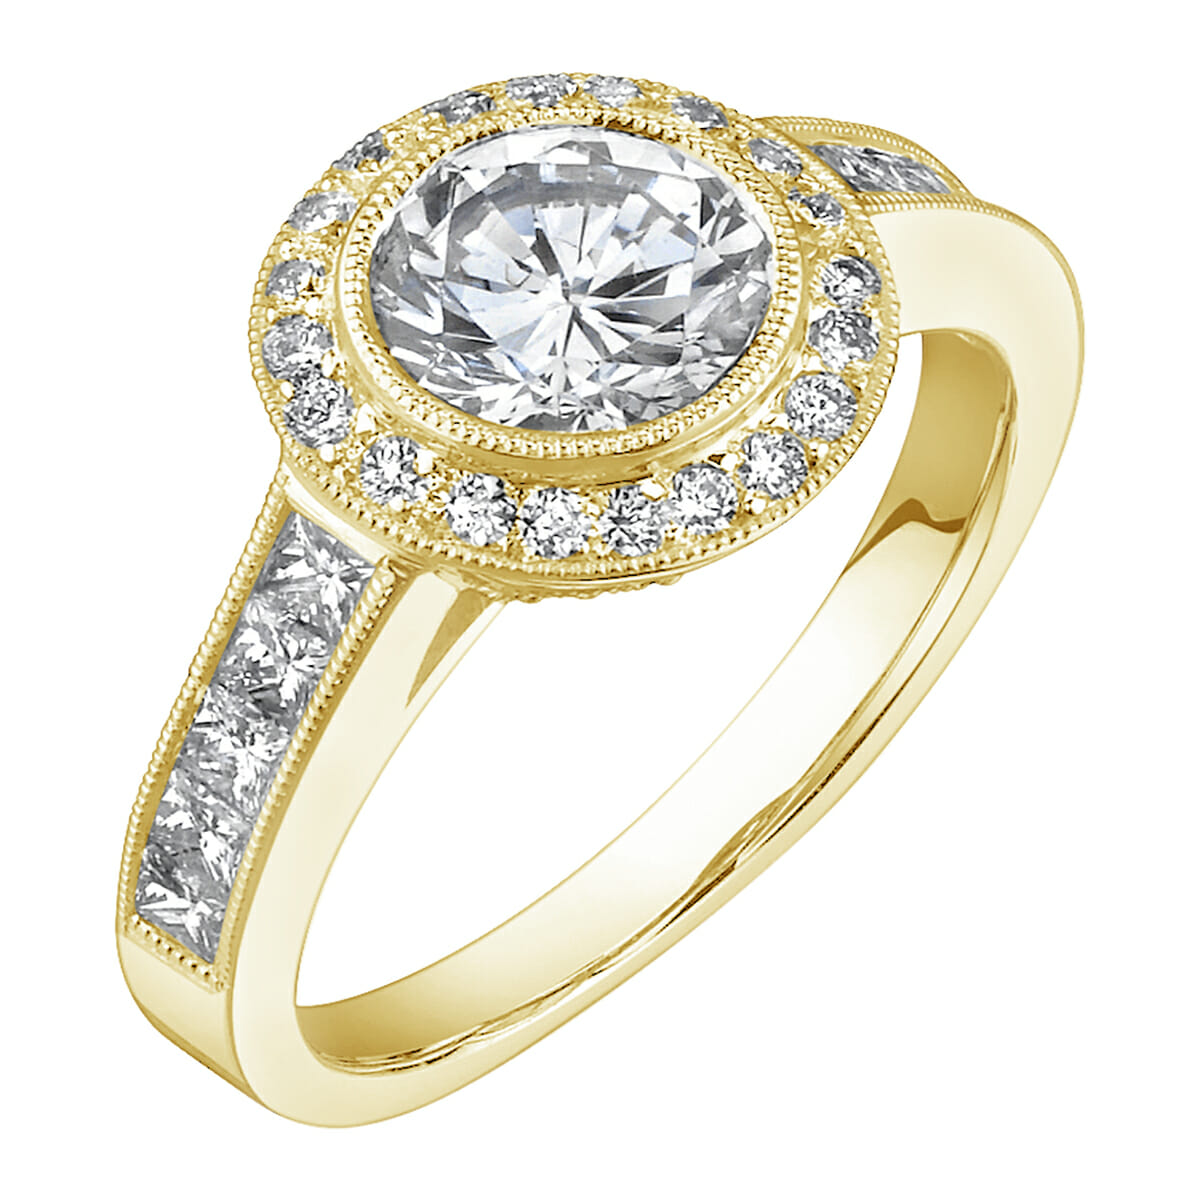 ring rings gold engagement bezel yellow cocktail new set diamond marquise solitaire shop f